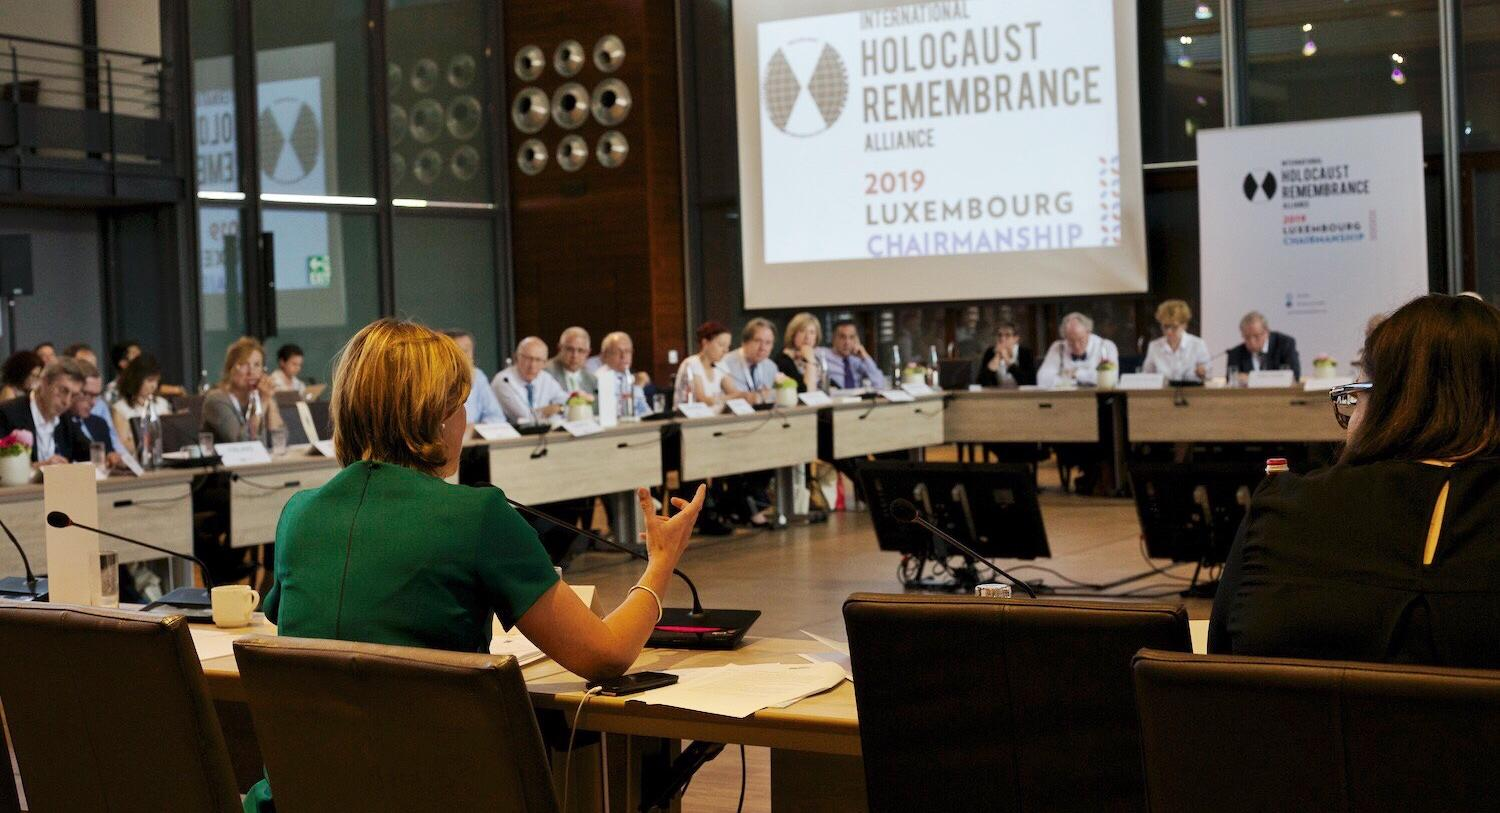 IHRA meetings in Mondorf-les-Bains successfully concluded